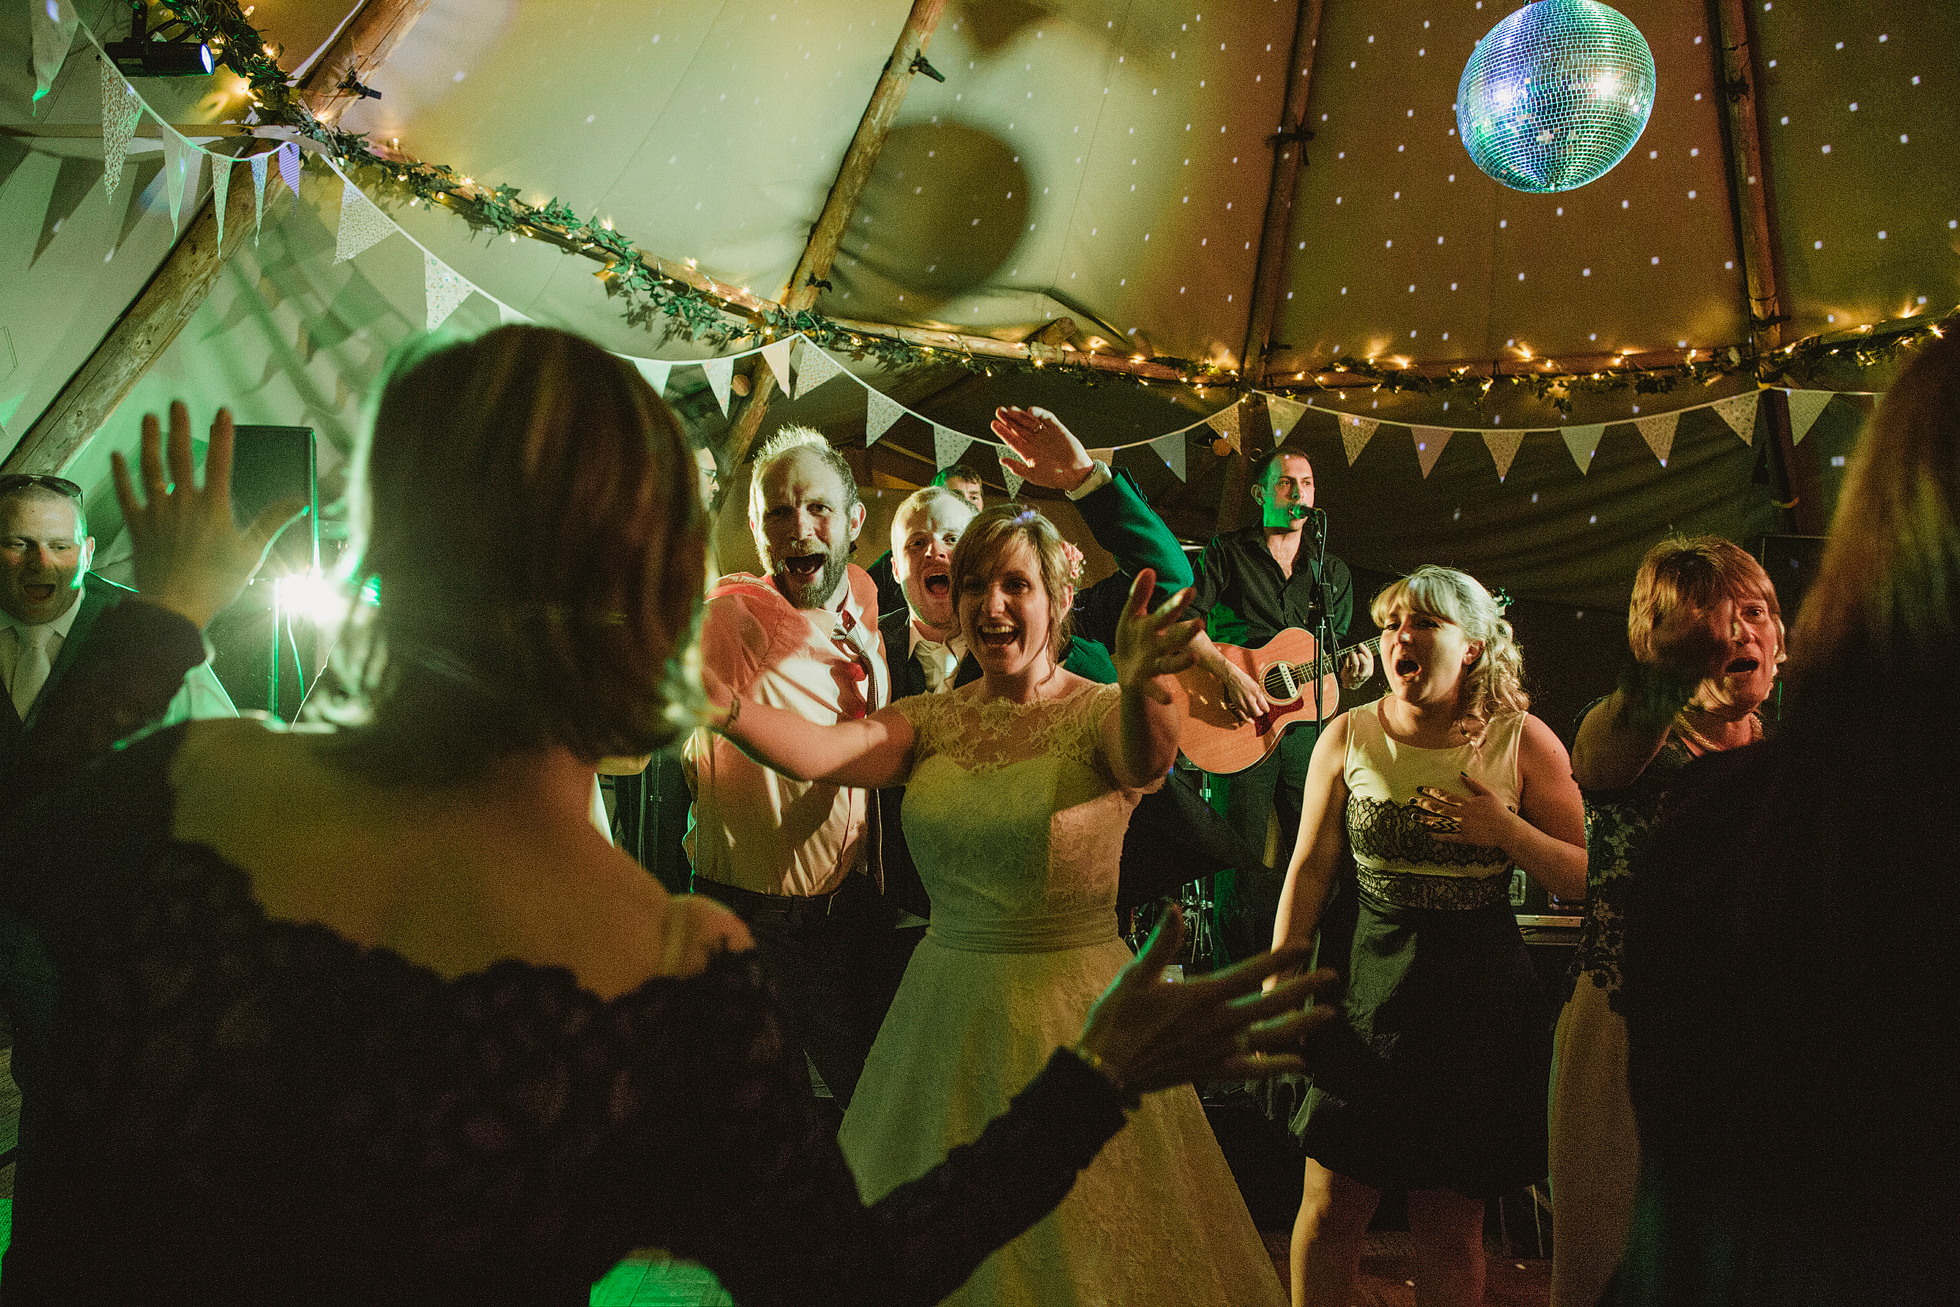 Low Light Wedding Photography with the Fuji X-T1